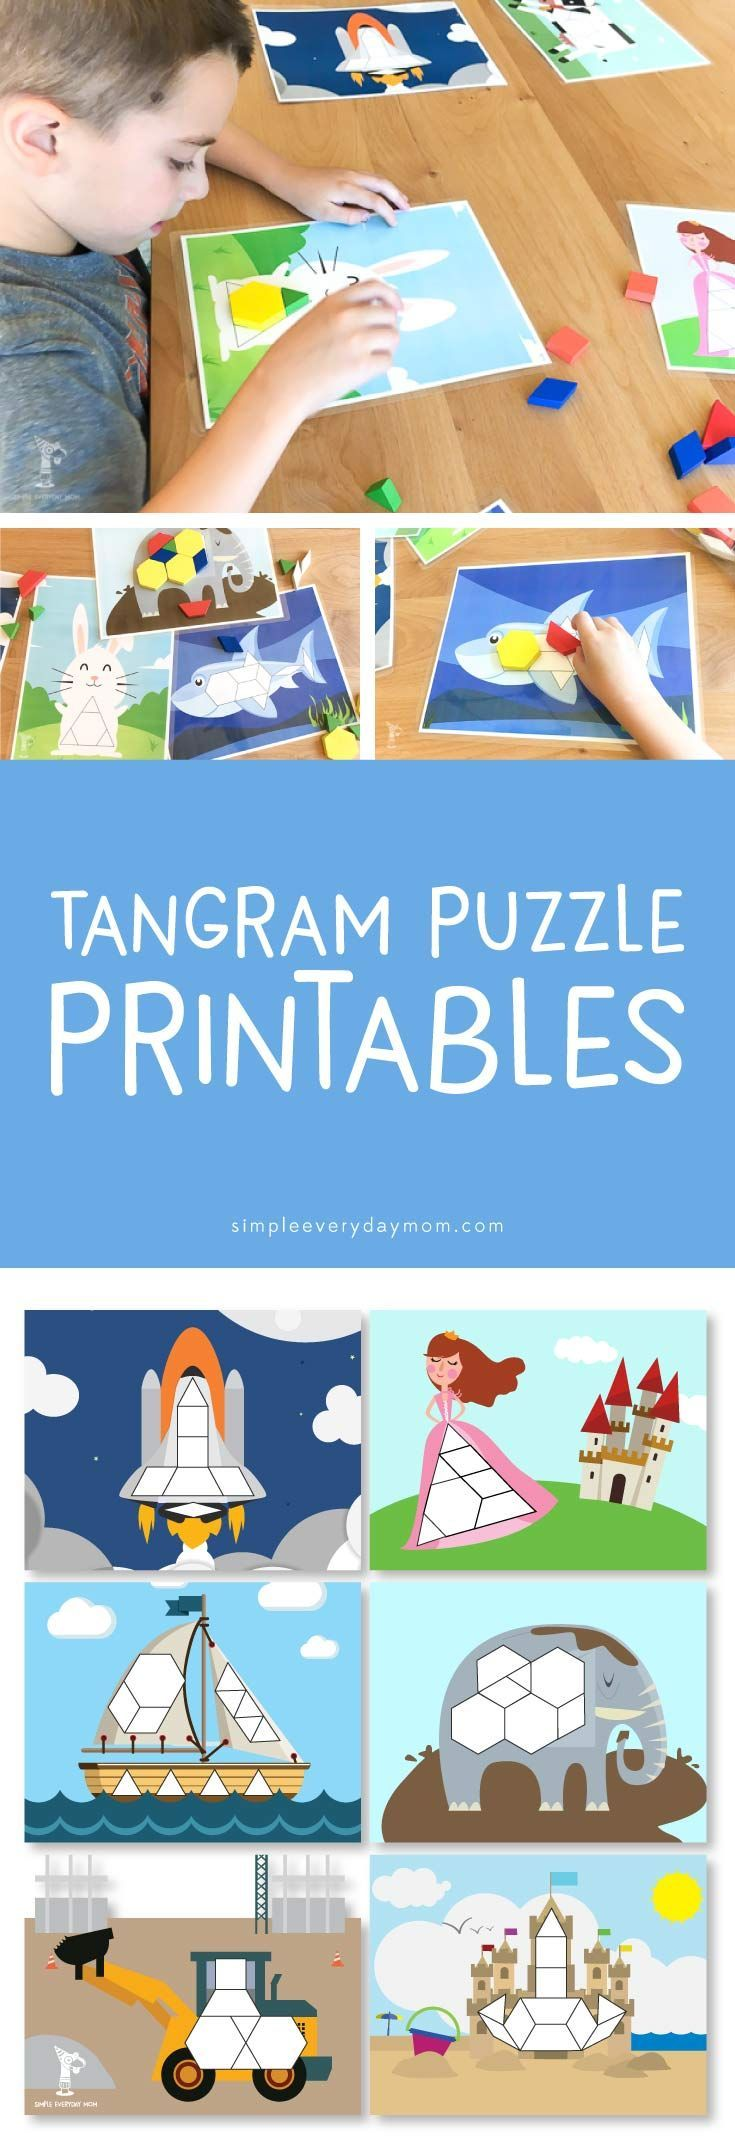 11 Tangram Printables That\'ll Make Your Kids Excited About Math in ...